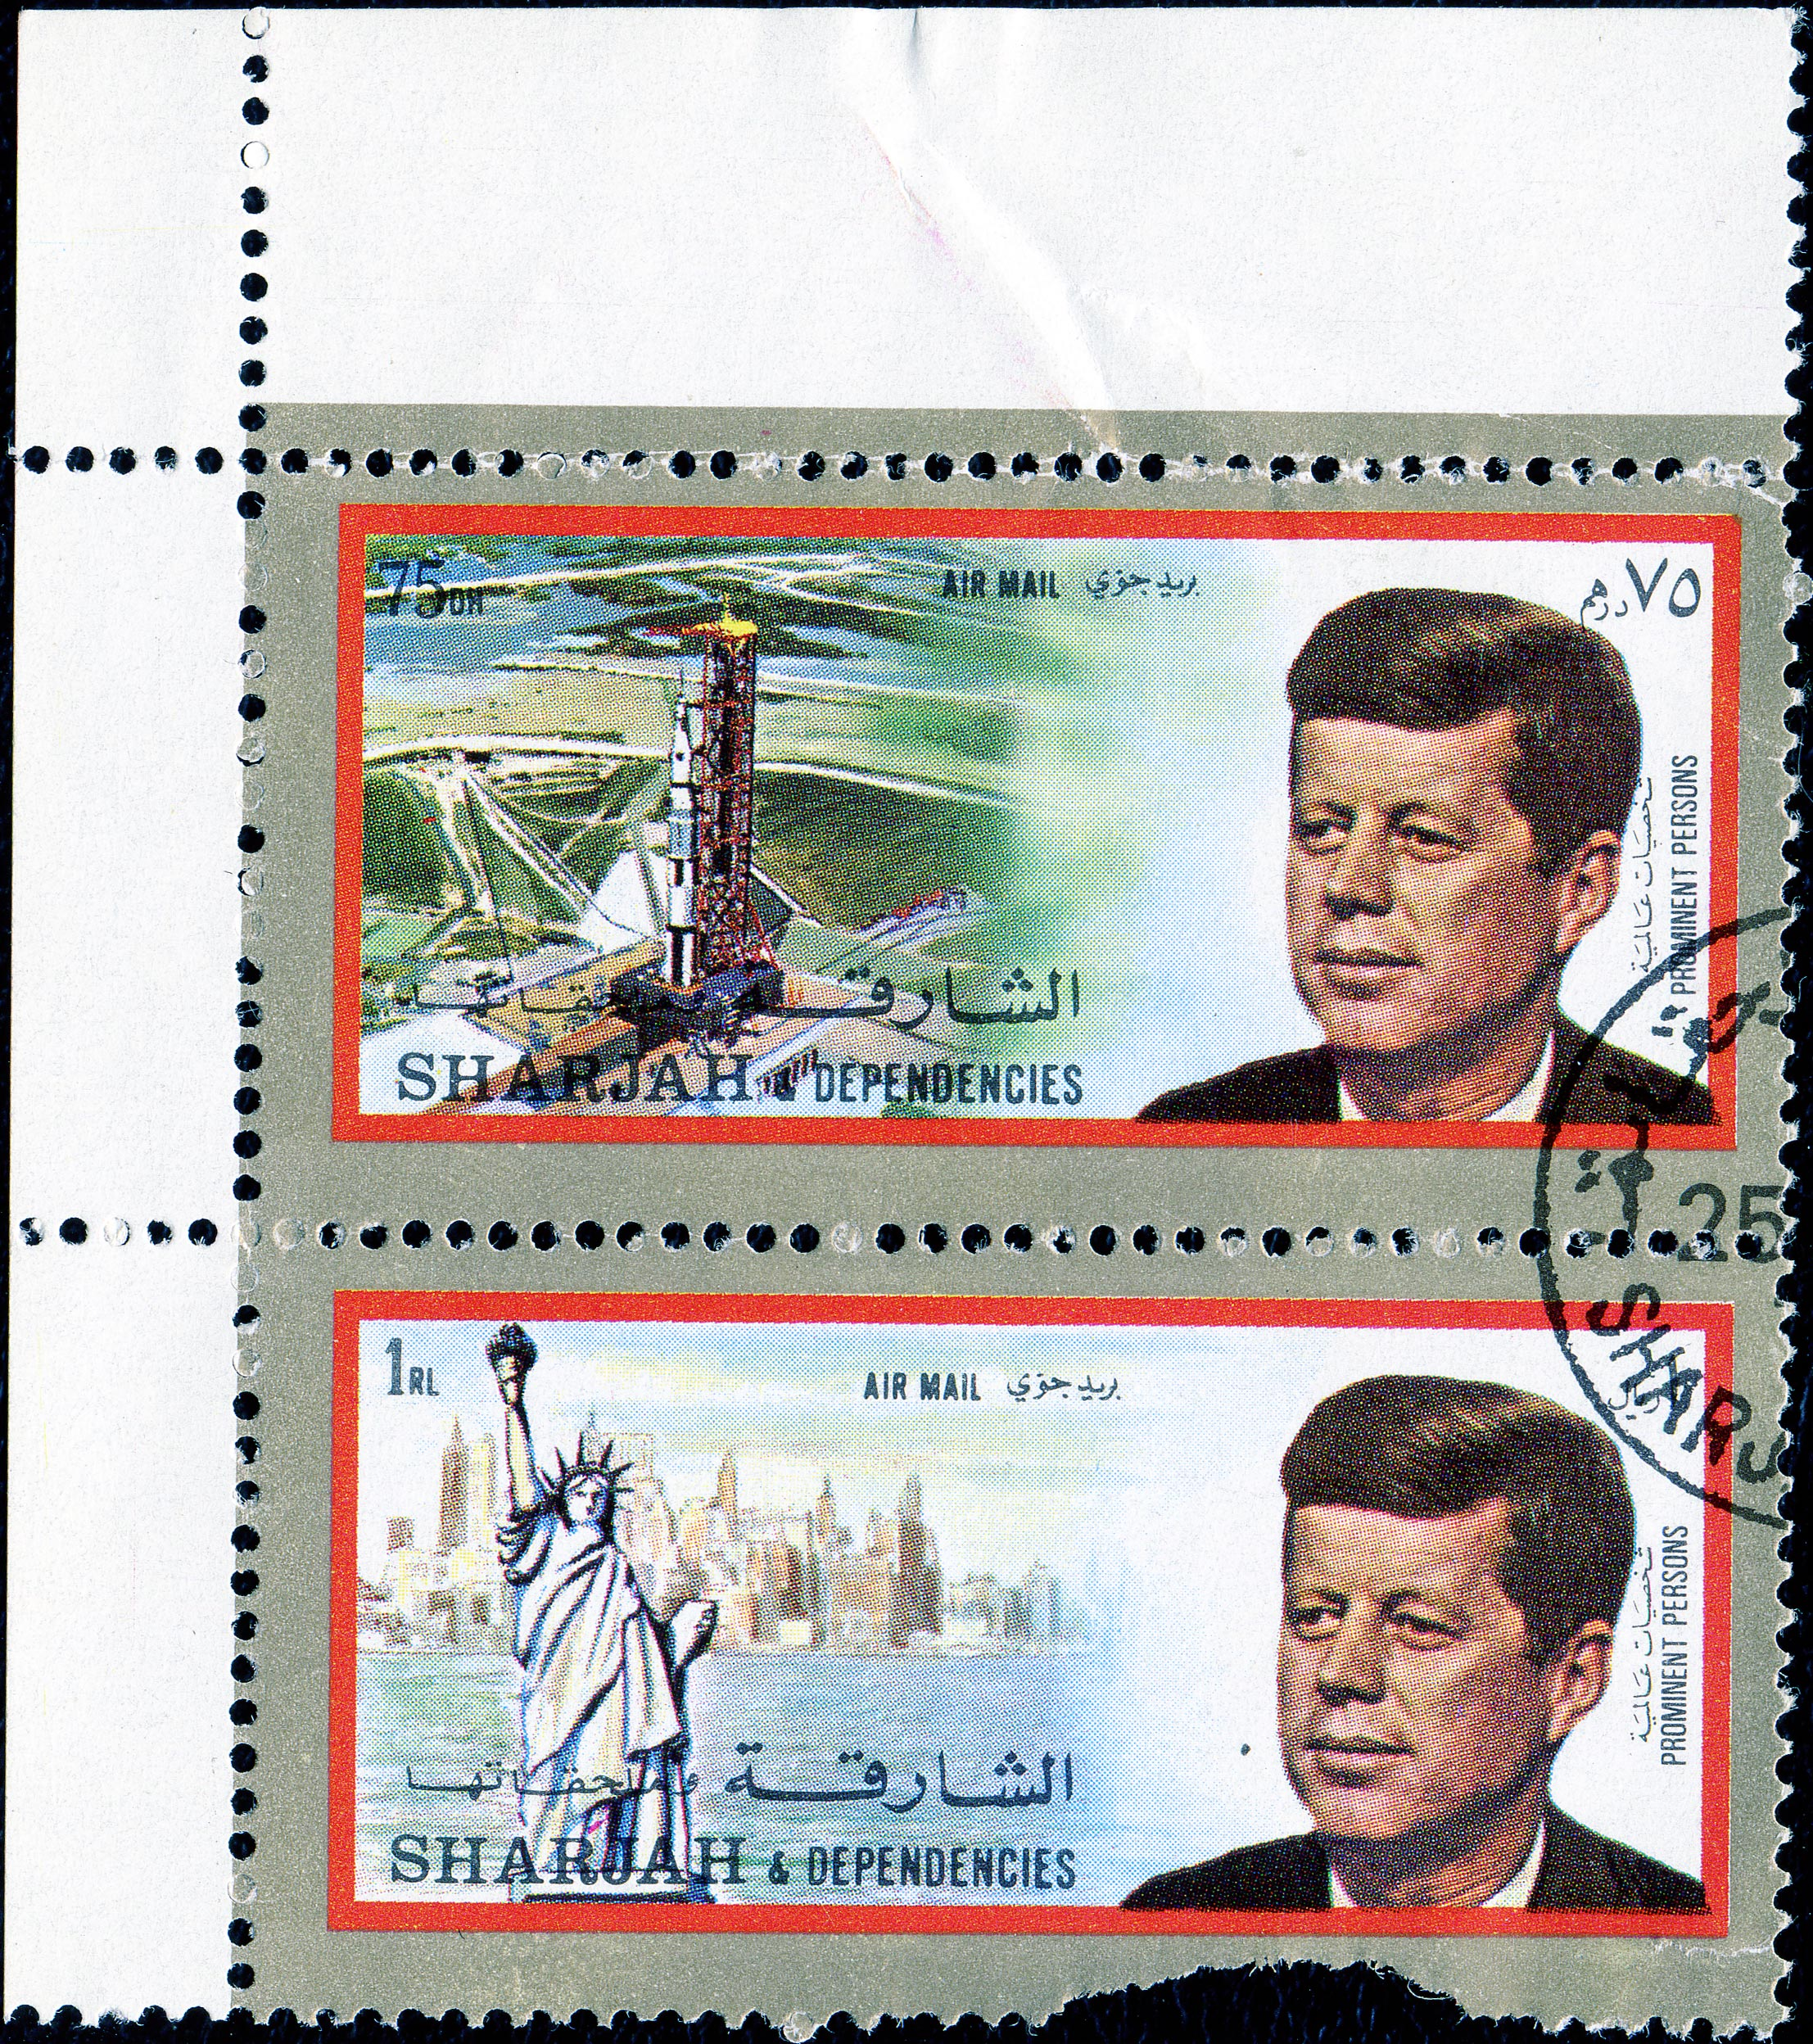 Stamps of Sharjah 04